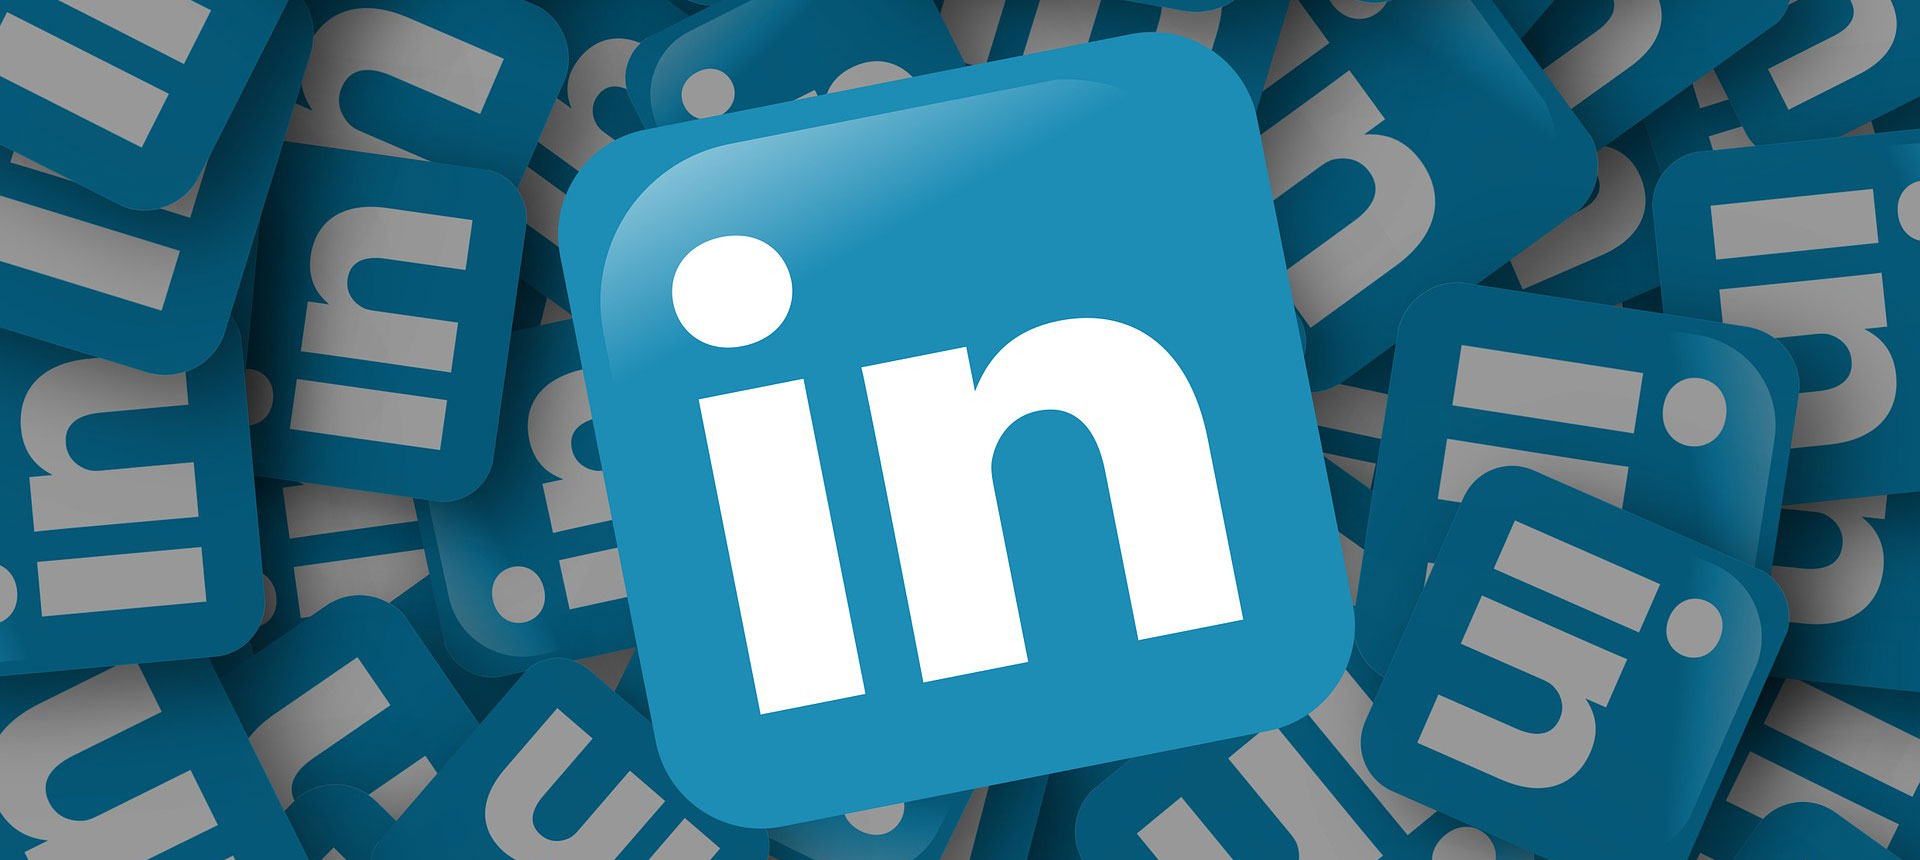 How to Make Your LinkedIn Profile Stand Out as a Software Engineer